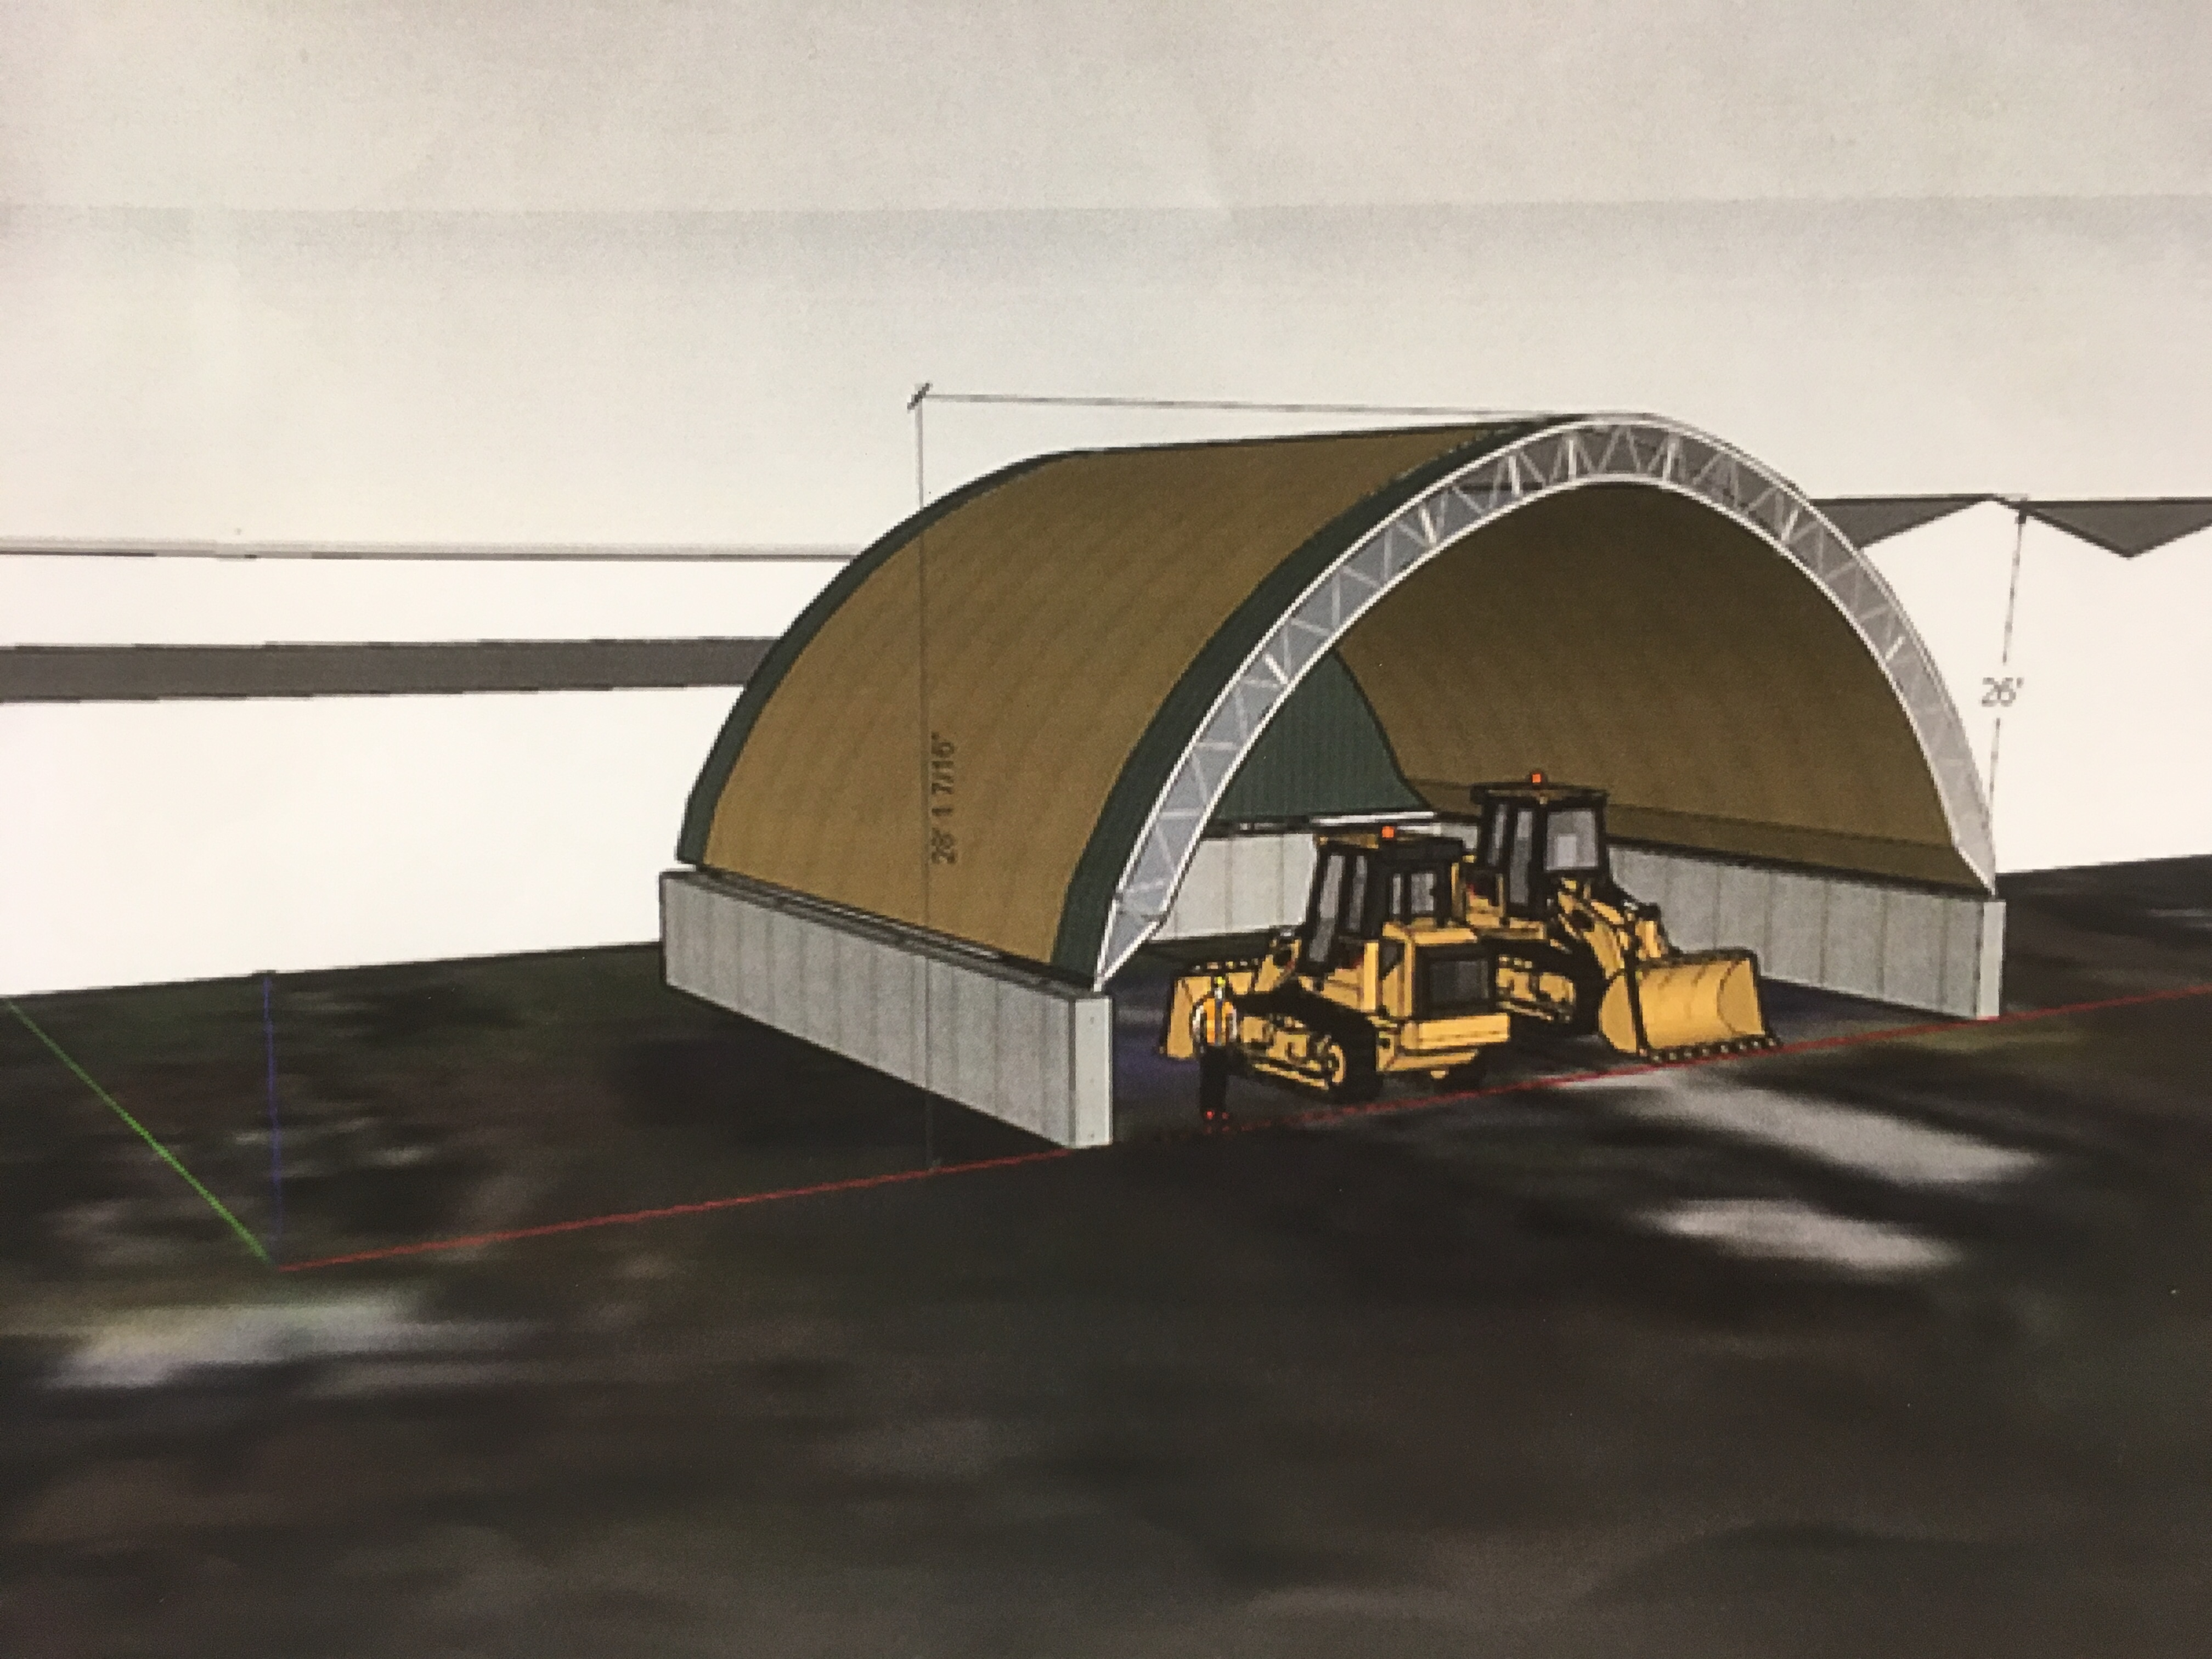 A mock-up of the proposed salt shed in Manorhaven. (Photo courtesy of Dejana Industries) & Manorhaven ided over salt storage shed - The Island Now